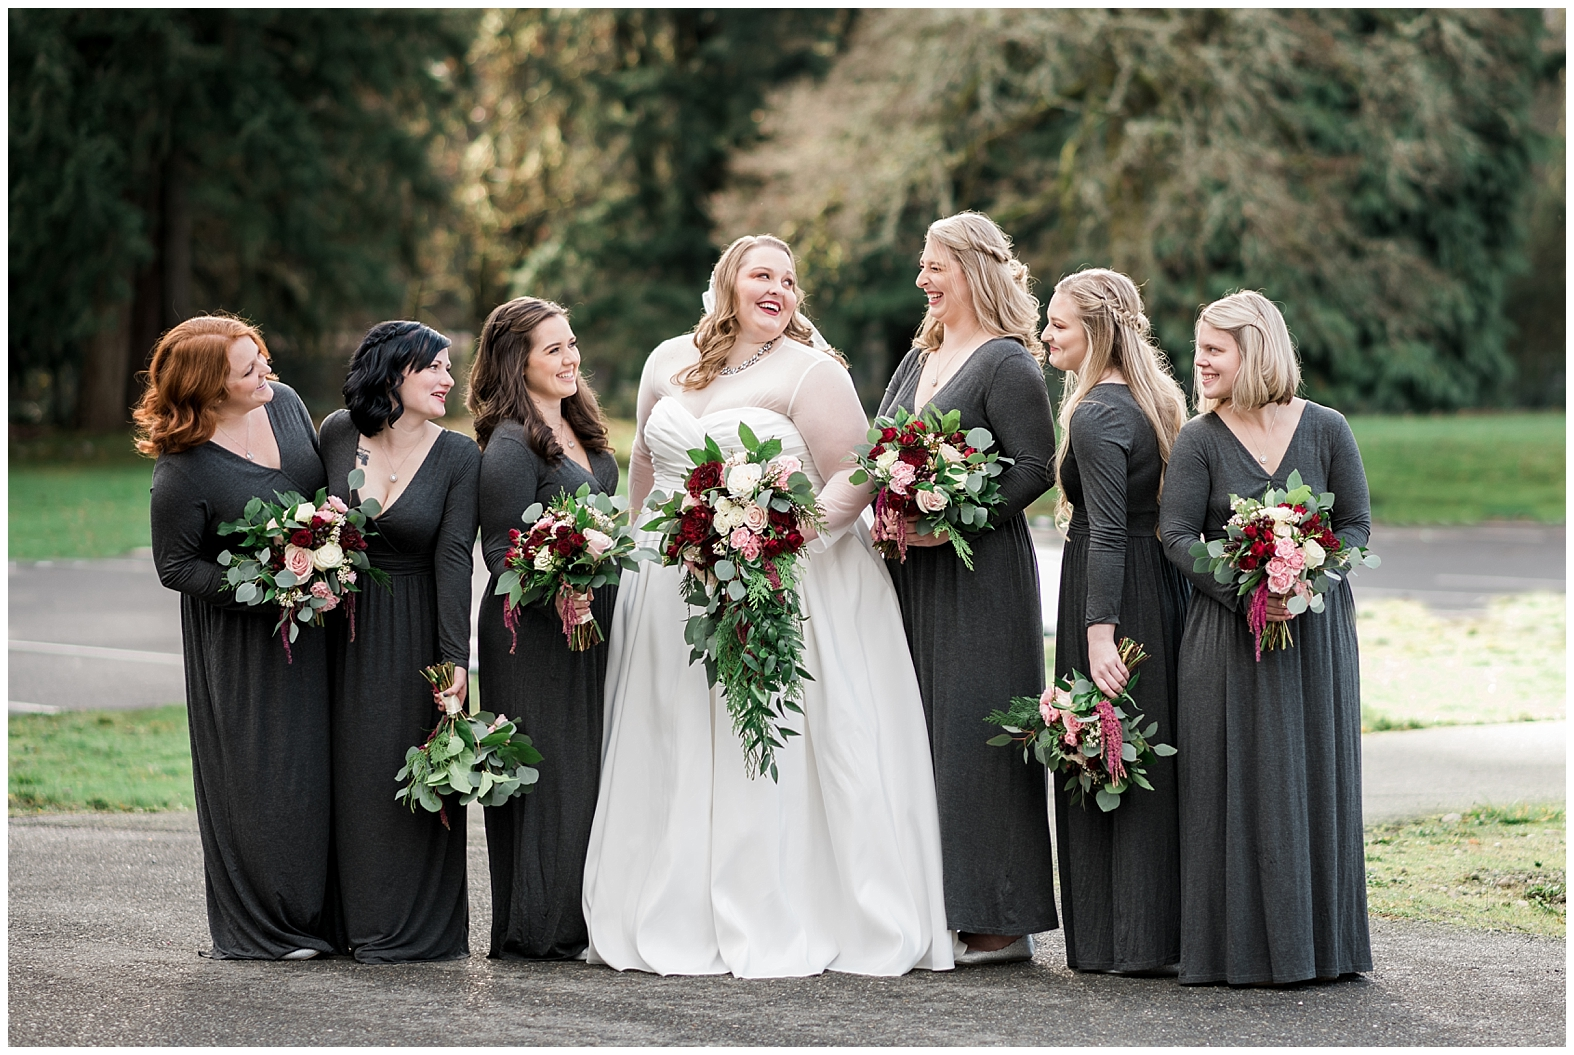 Rustic Industrial Wedding | Janet Lin Photography